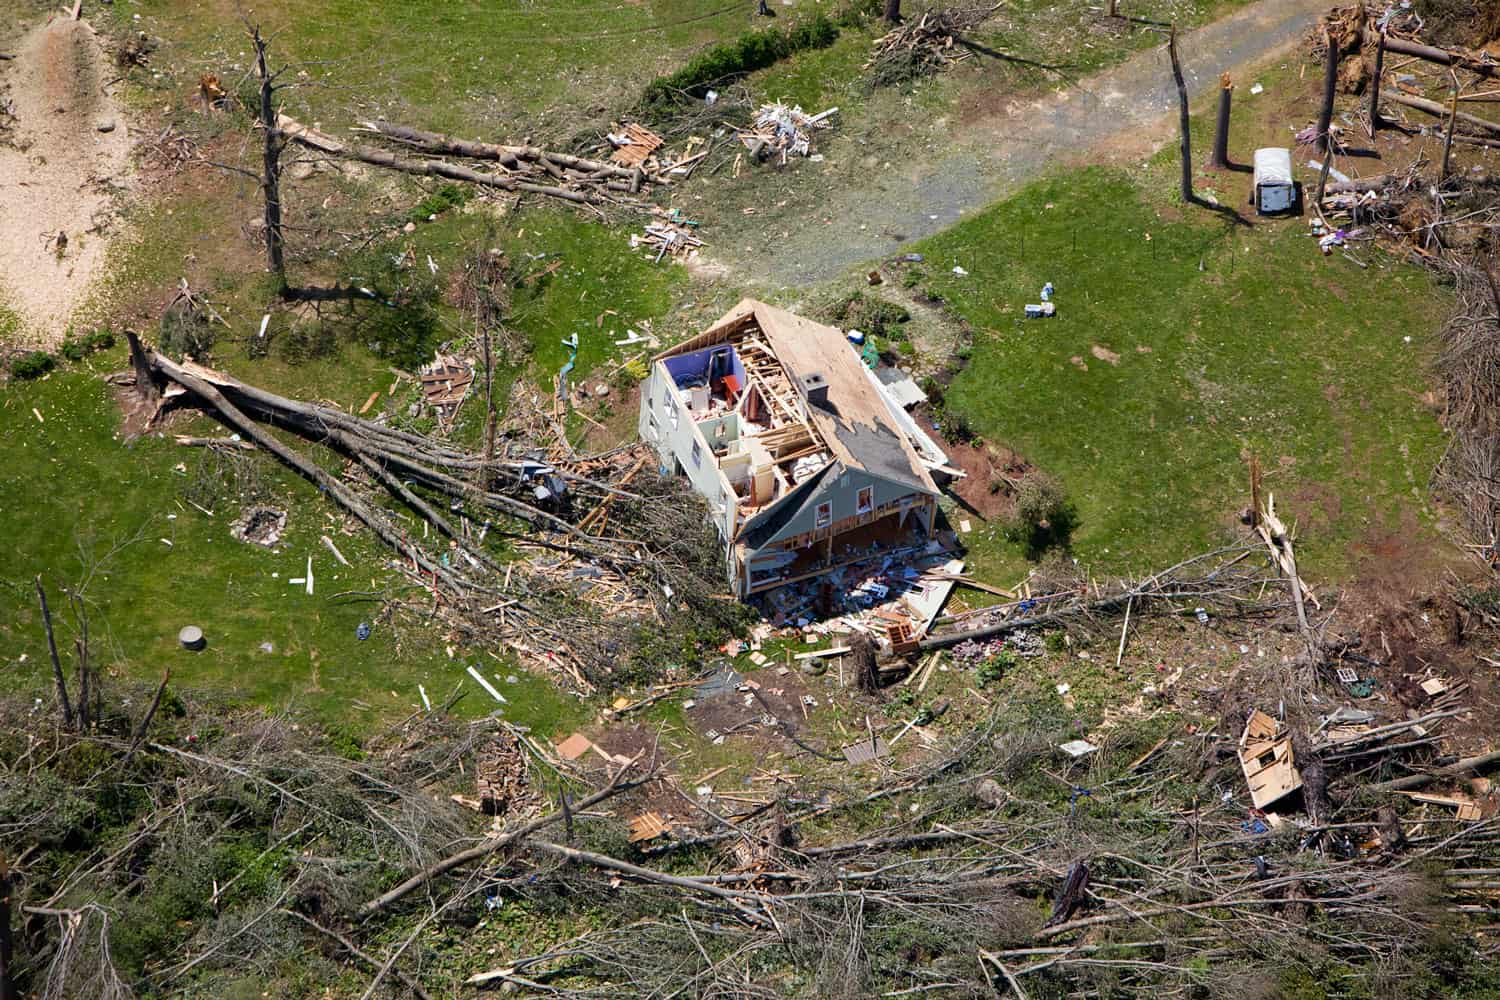 An aerial view of the destruction done by a tornado to a single family house